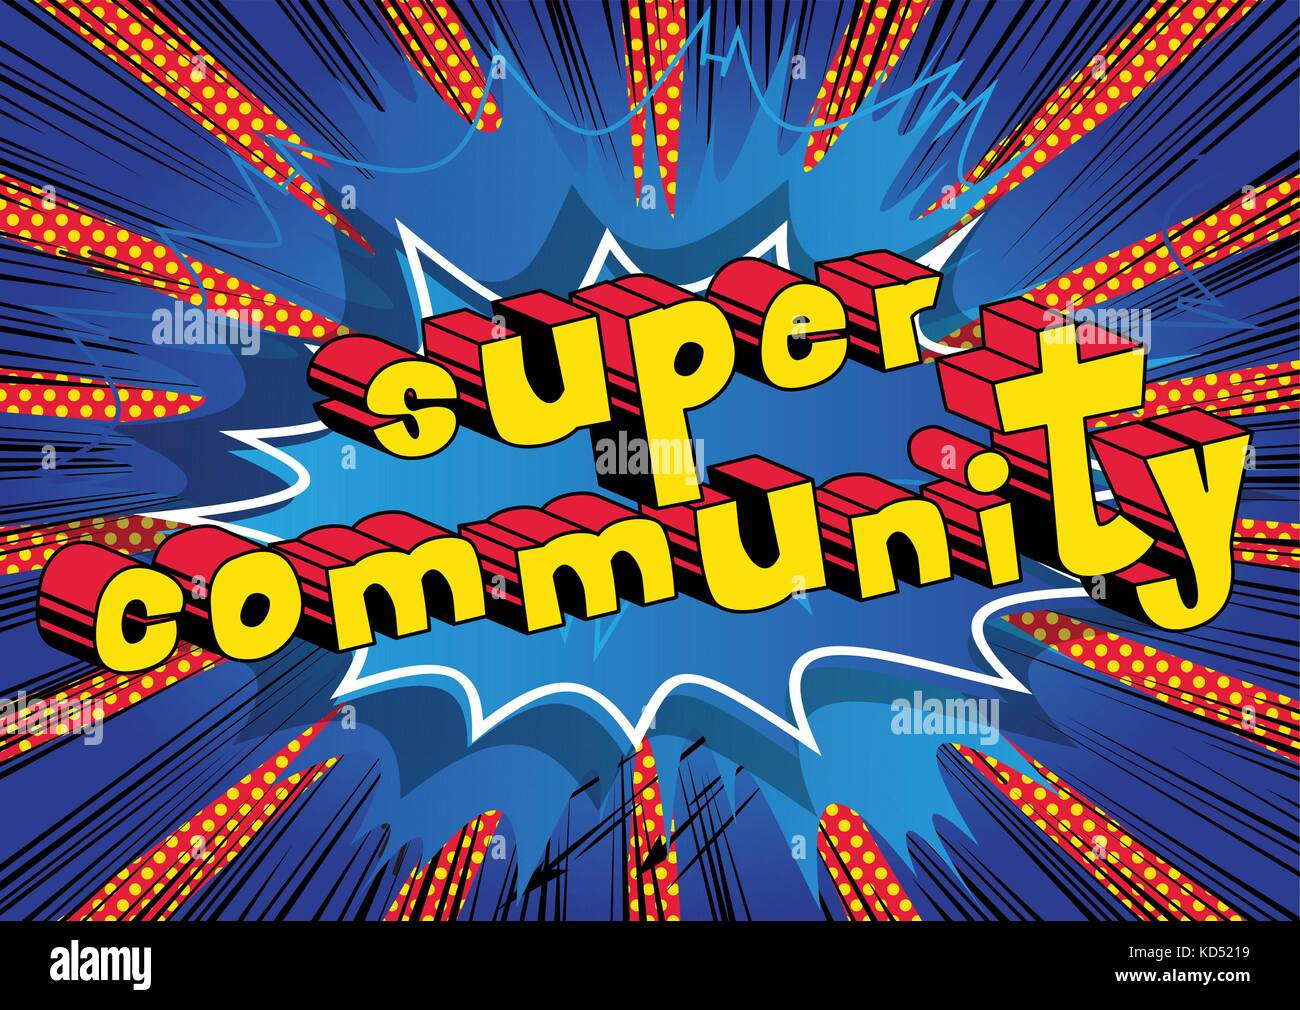 Community vectors stock photos community vectors stock images super community comic book style word on abstract background stock image sciox Gallery